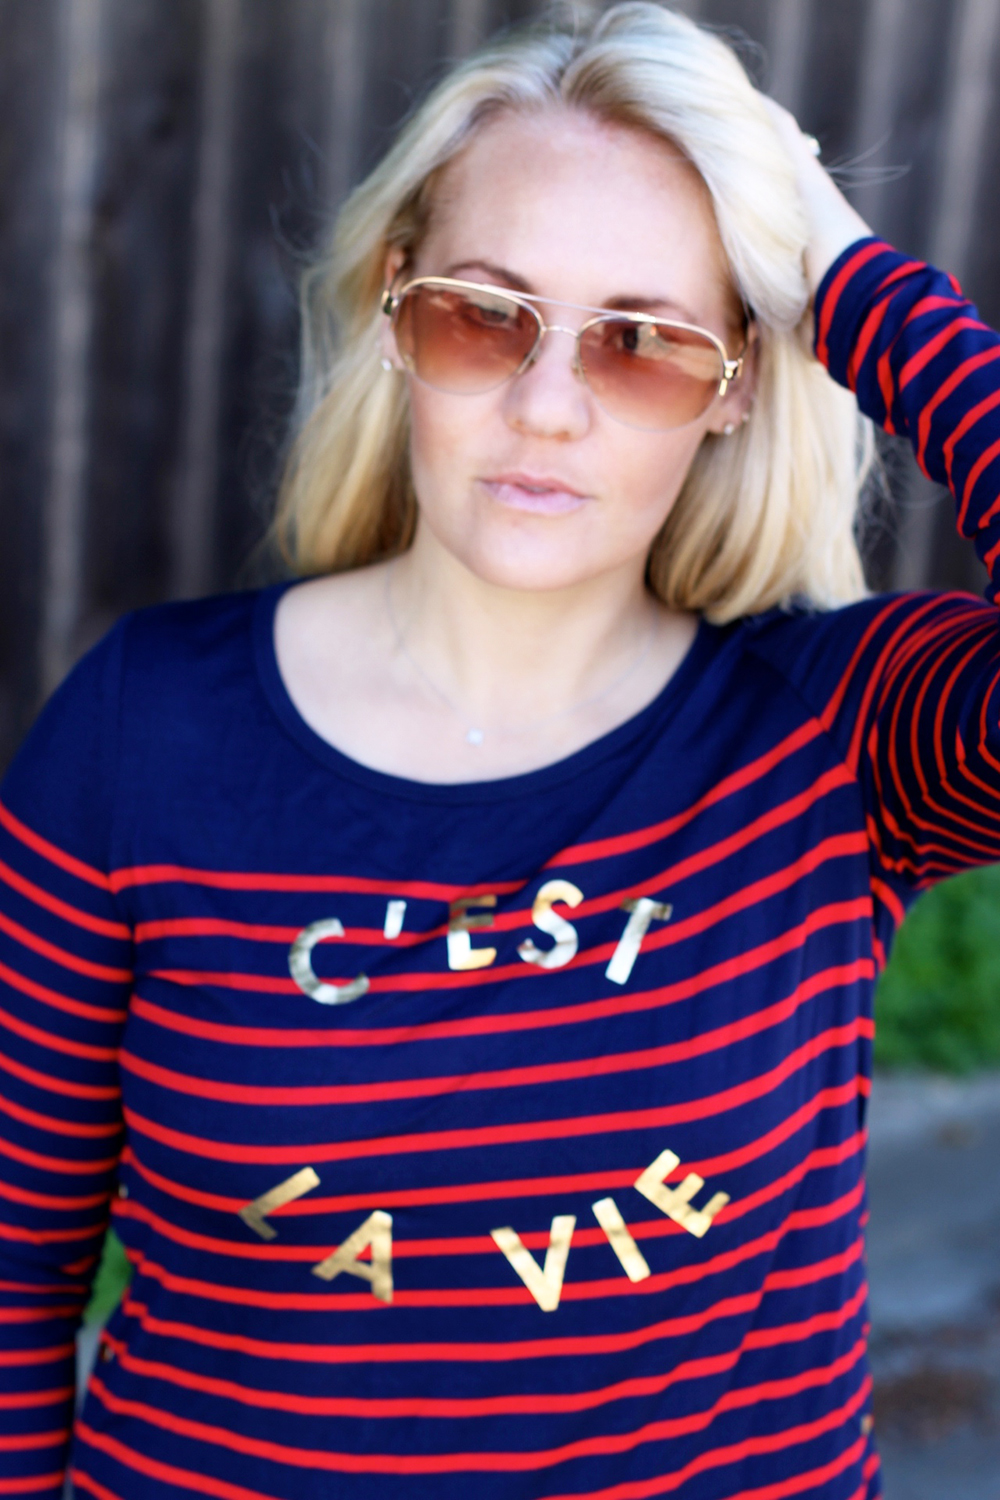 C'est La Vie-Everyday Mom Style-Mom Uniform-Nursing Top-Outfit Inspiration-Bay Area Fashion Blogger-Have Need Want 12